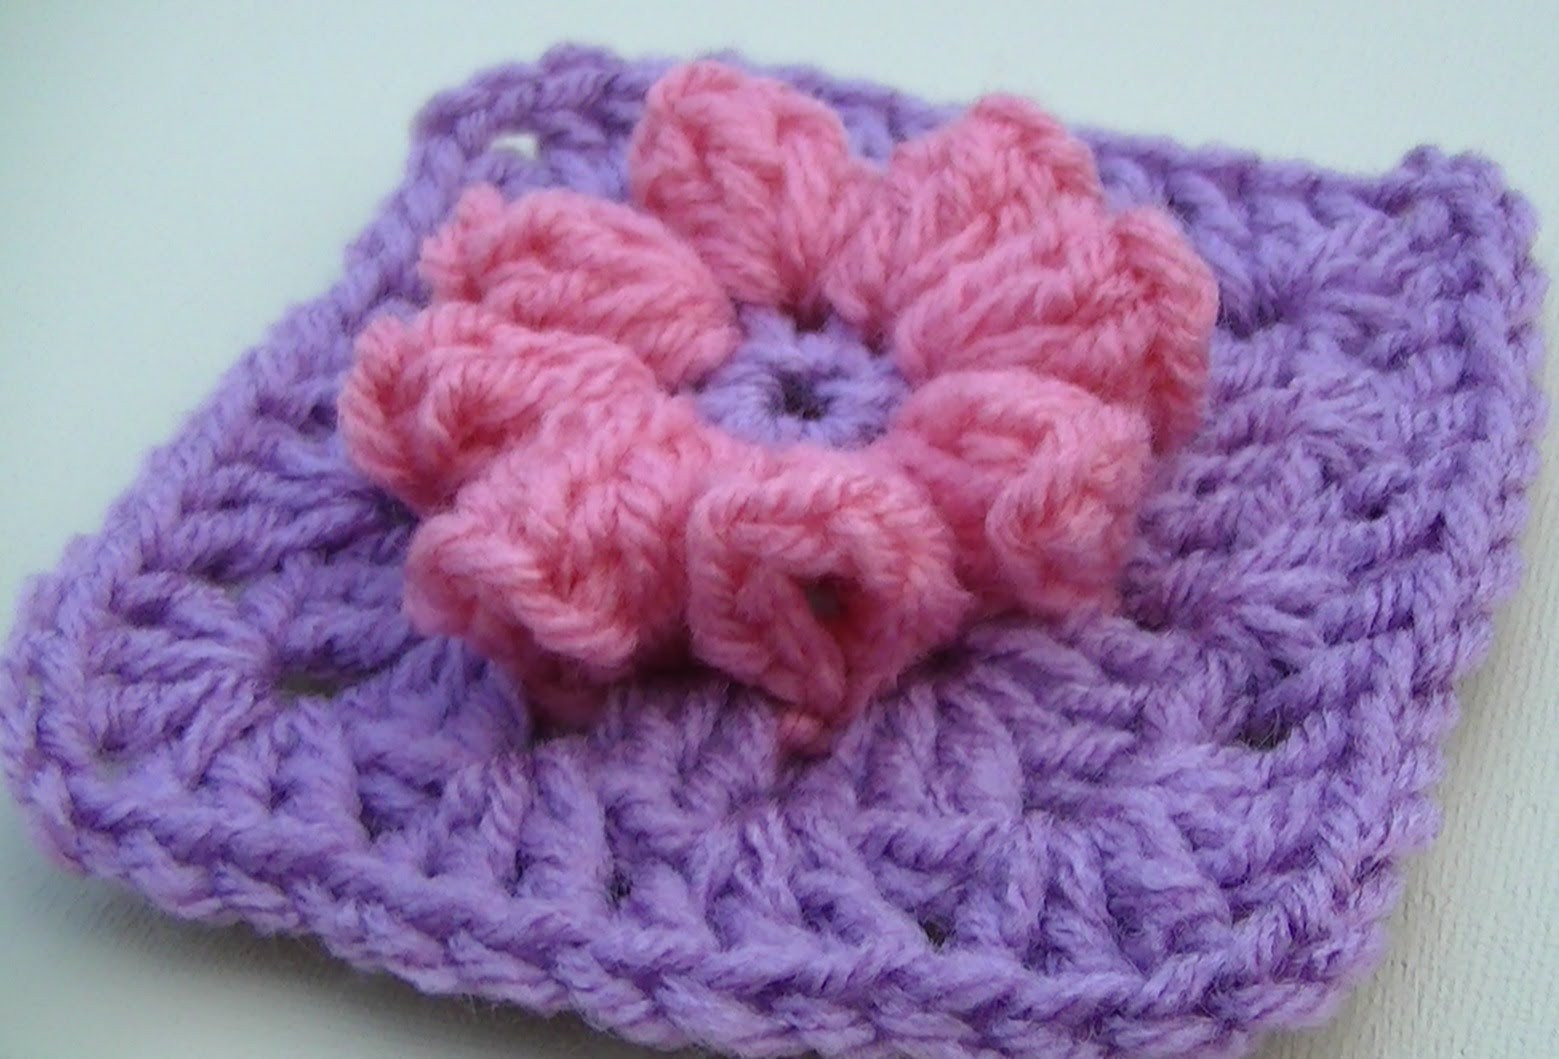 Best Of Crochet Tutorial Youtube Youtube Crochet Tutorial Videos Of Lovely 41 Photos Youtube Crochet Tutorial Videos